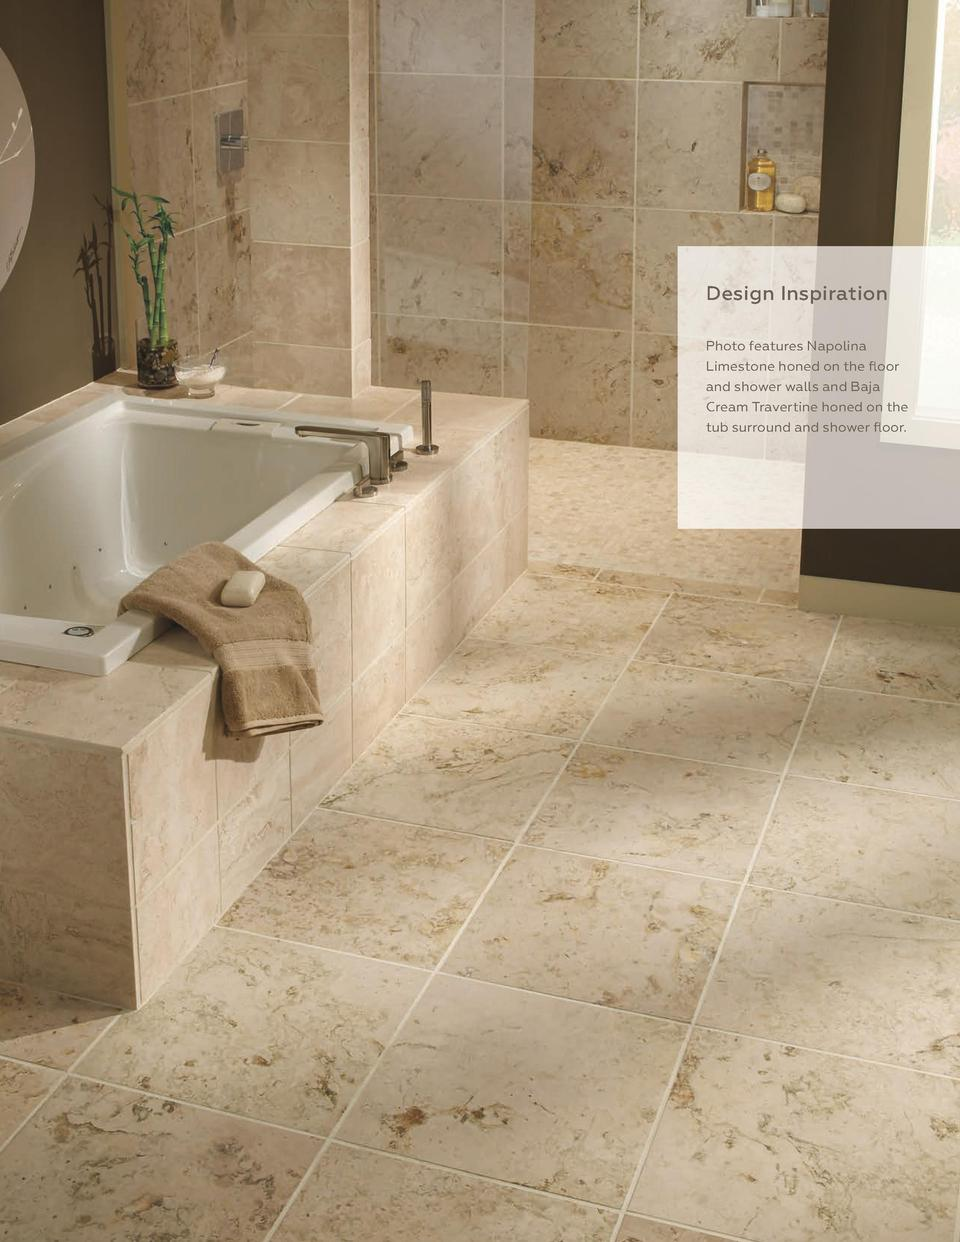 413  Design Inspiration Photo features Napolina Limestone honed on the floor and shower walls and Baja Cream Travertine ho...